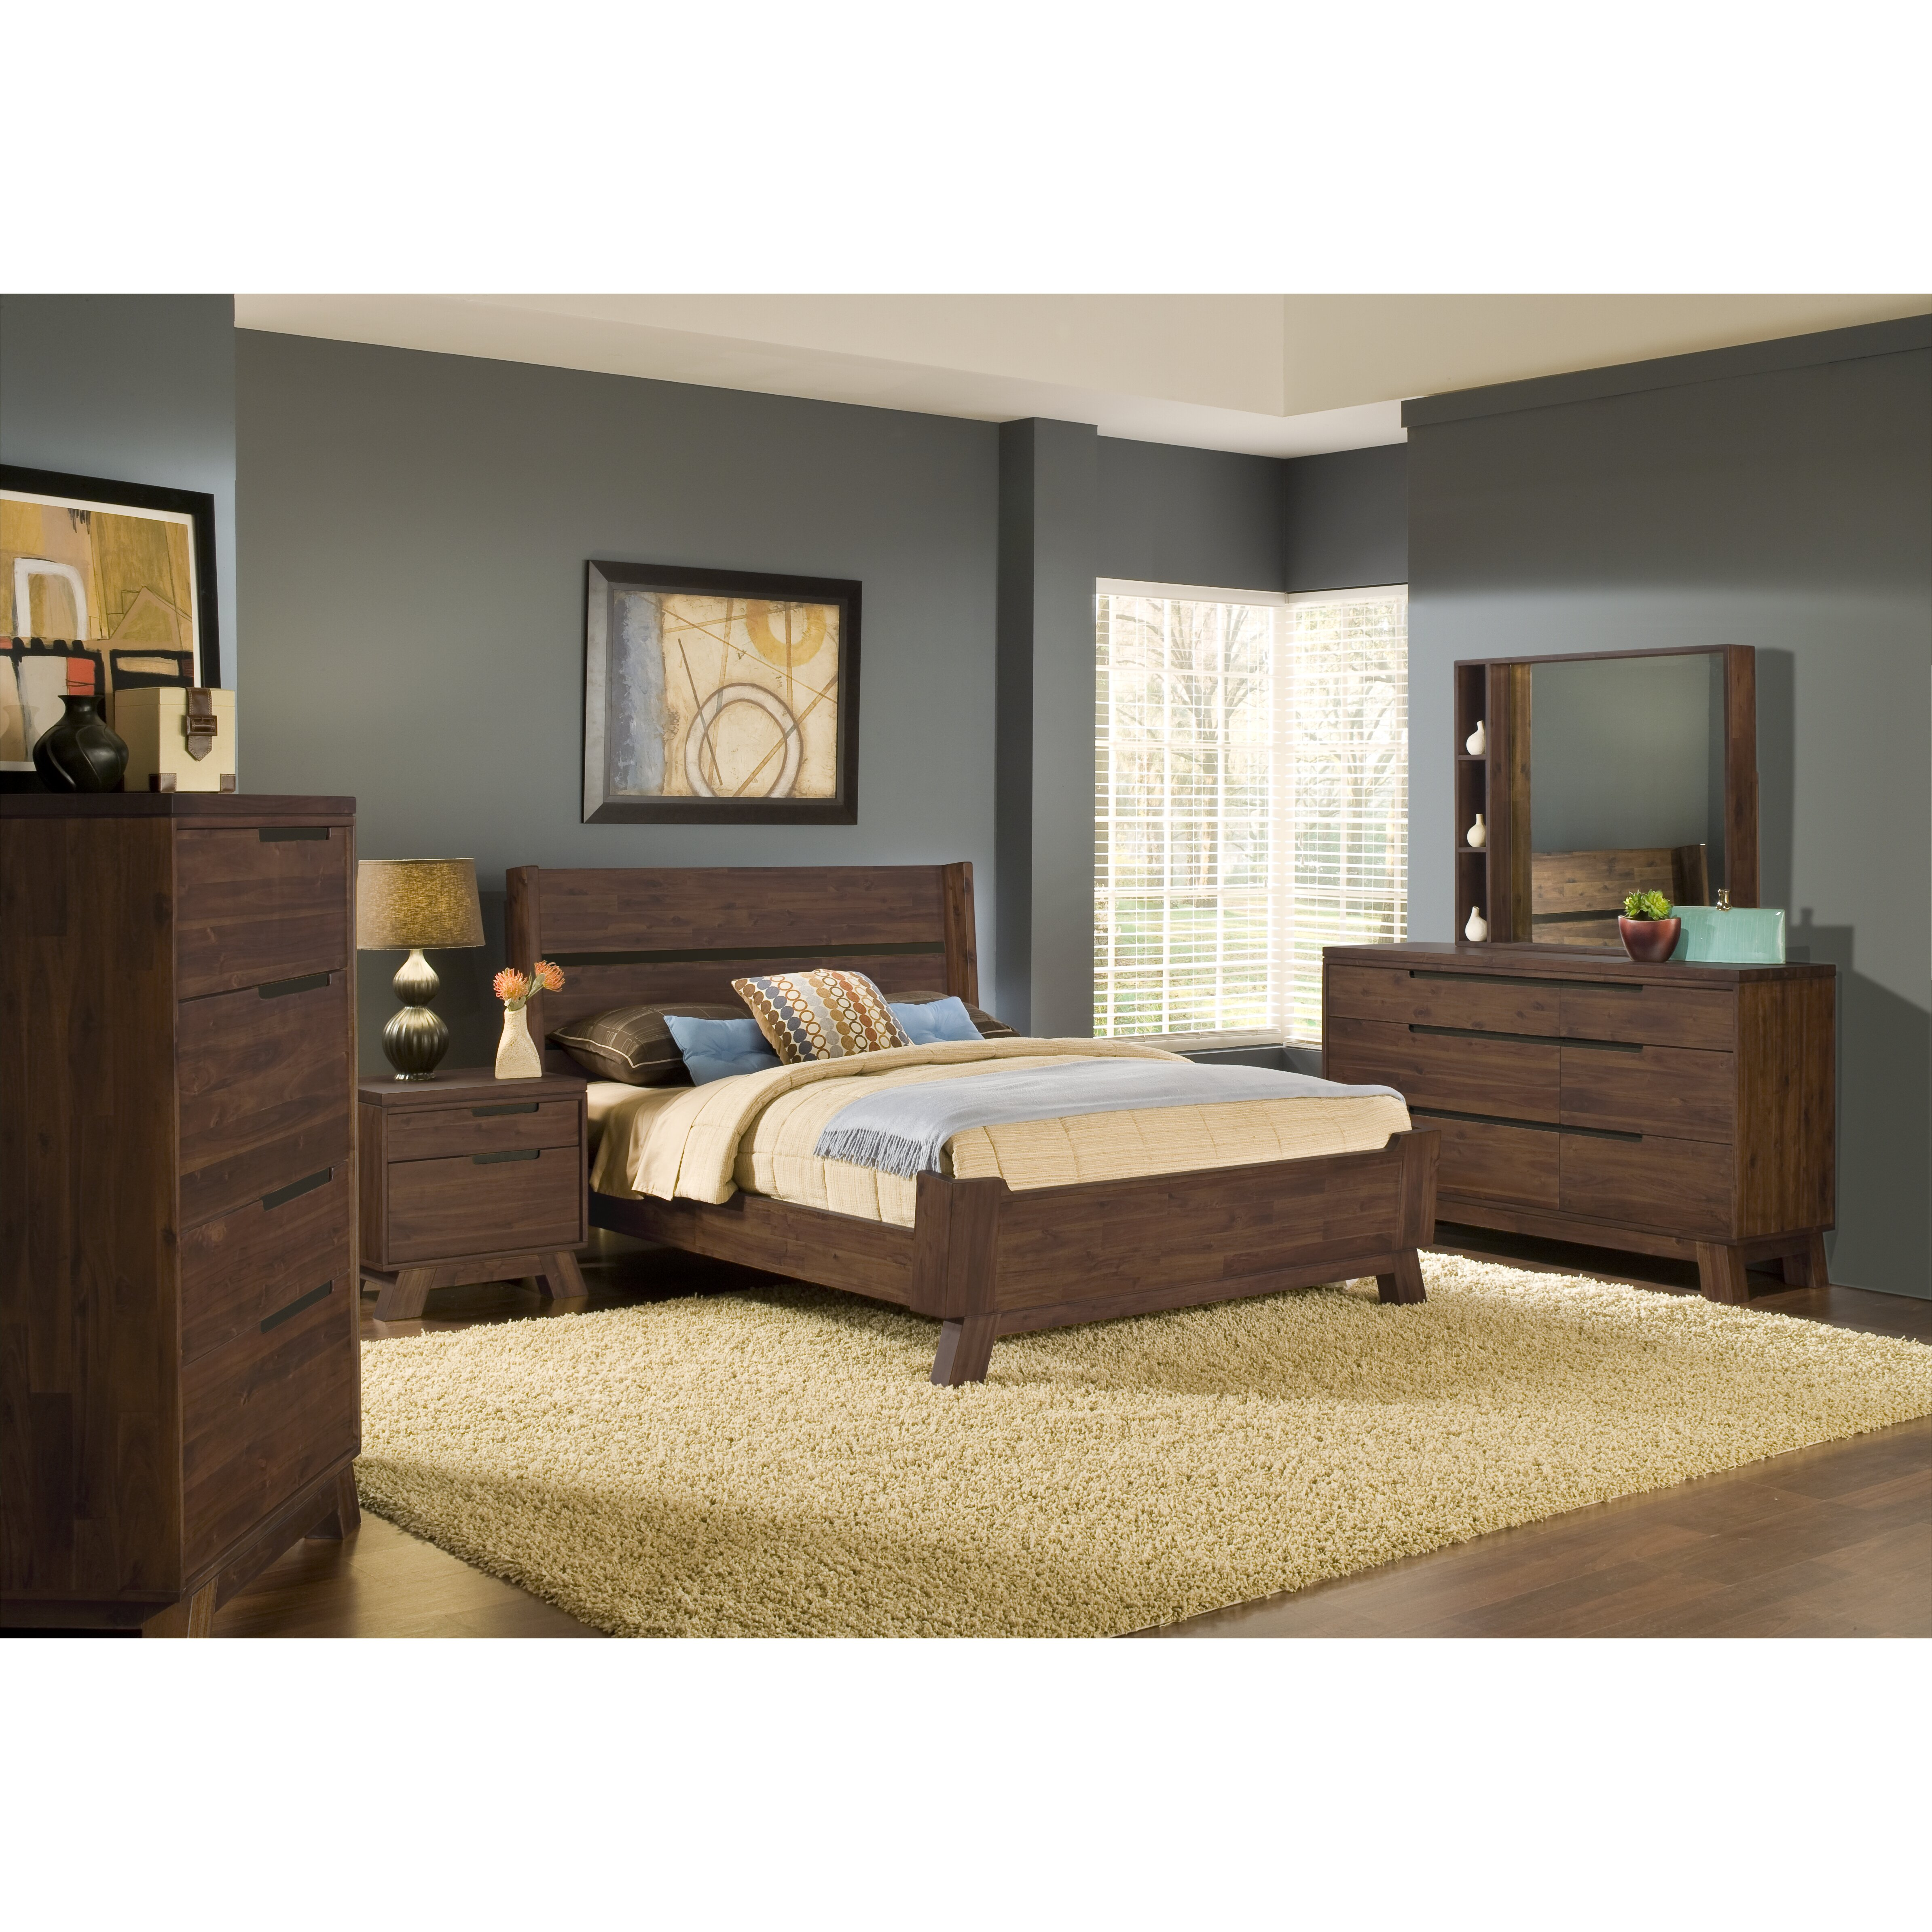 Modust Bed Room Furniture